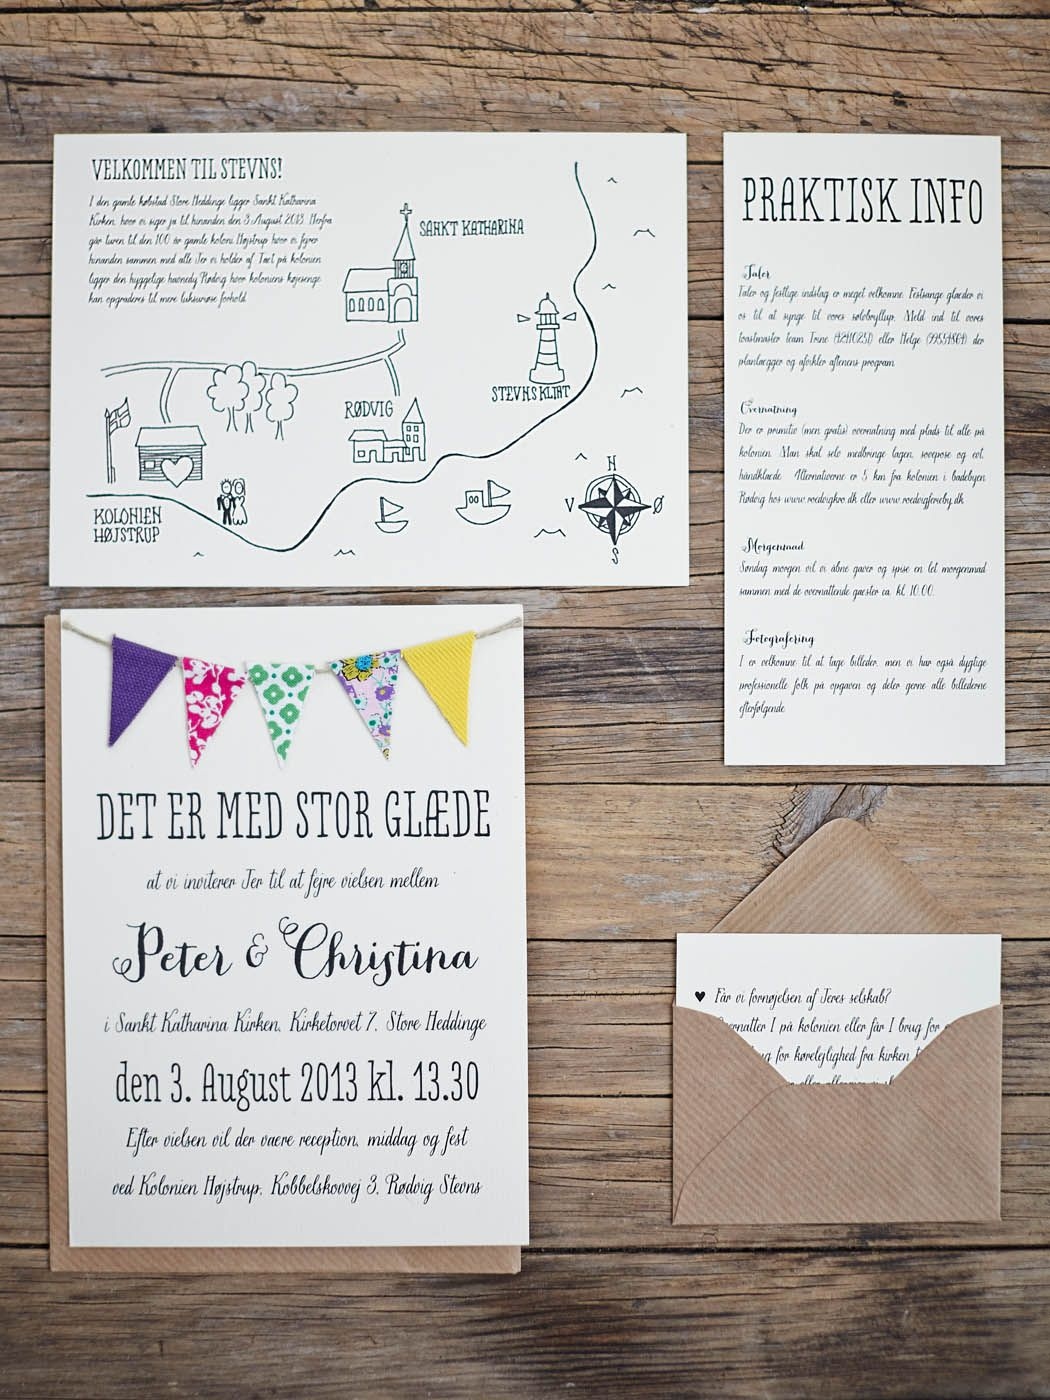 Cute wedding invitations, bunting wedding invitations. Beautiful DIY ...